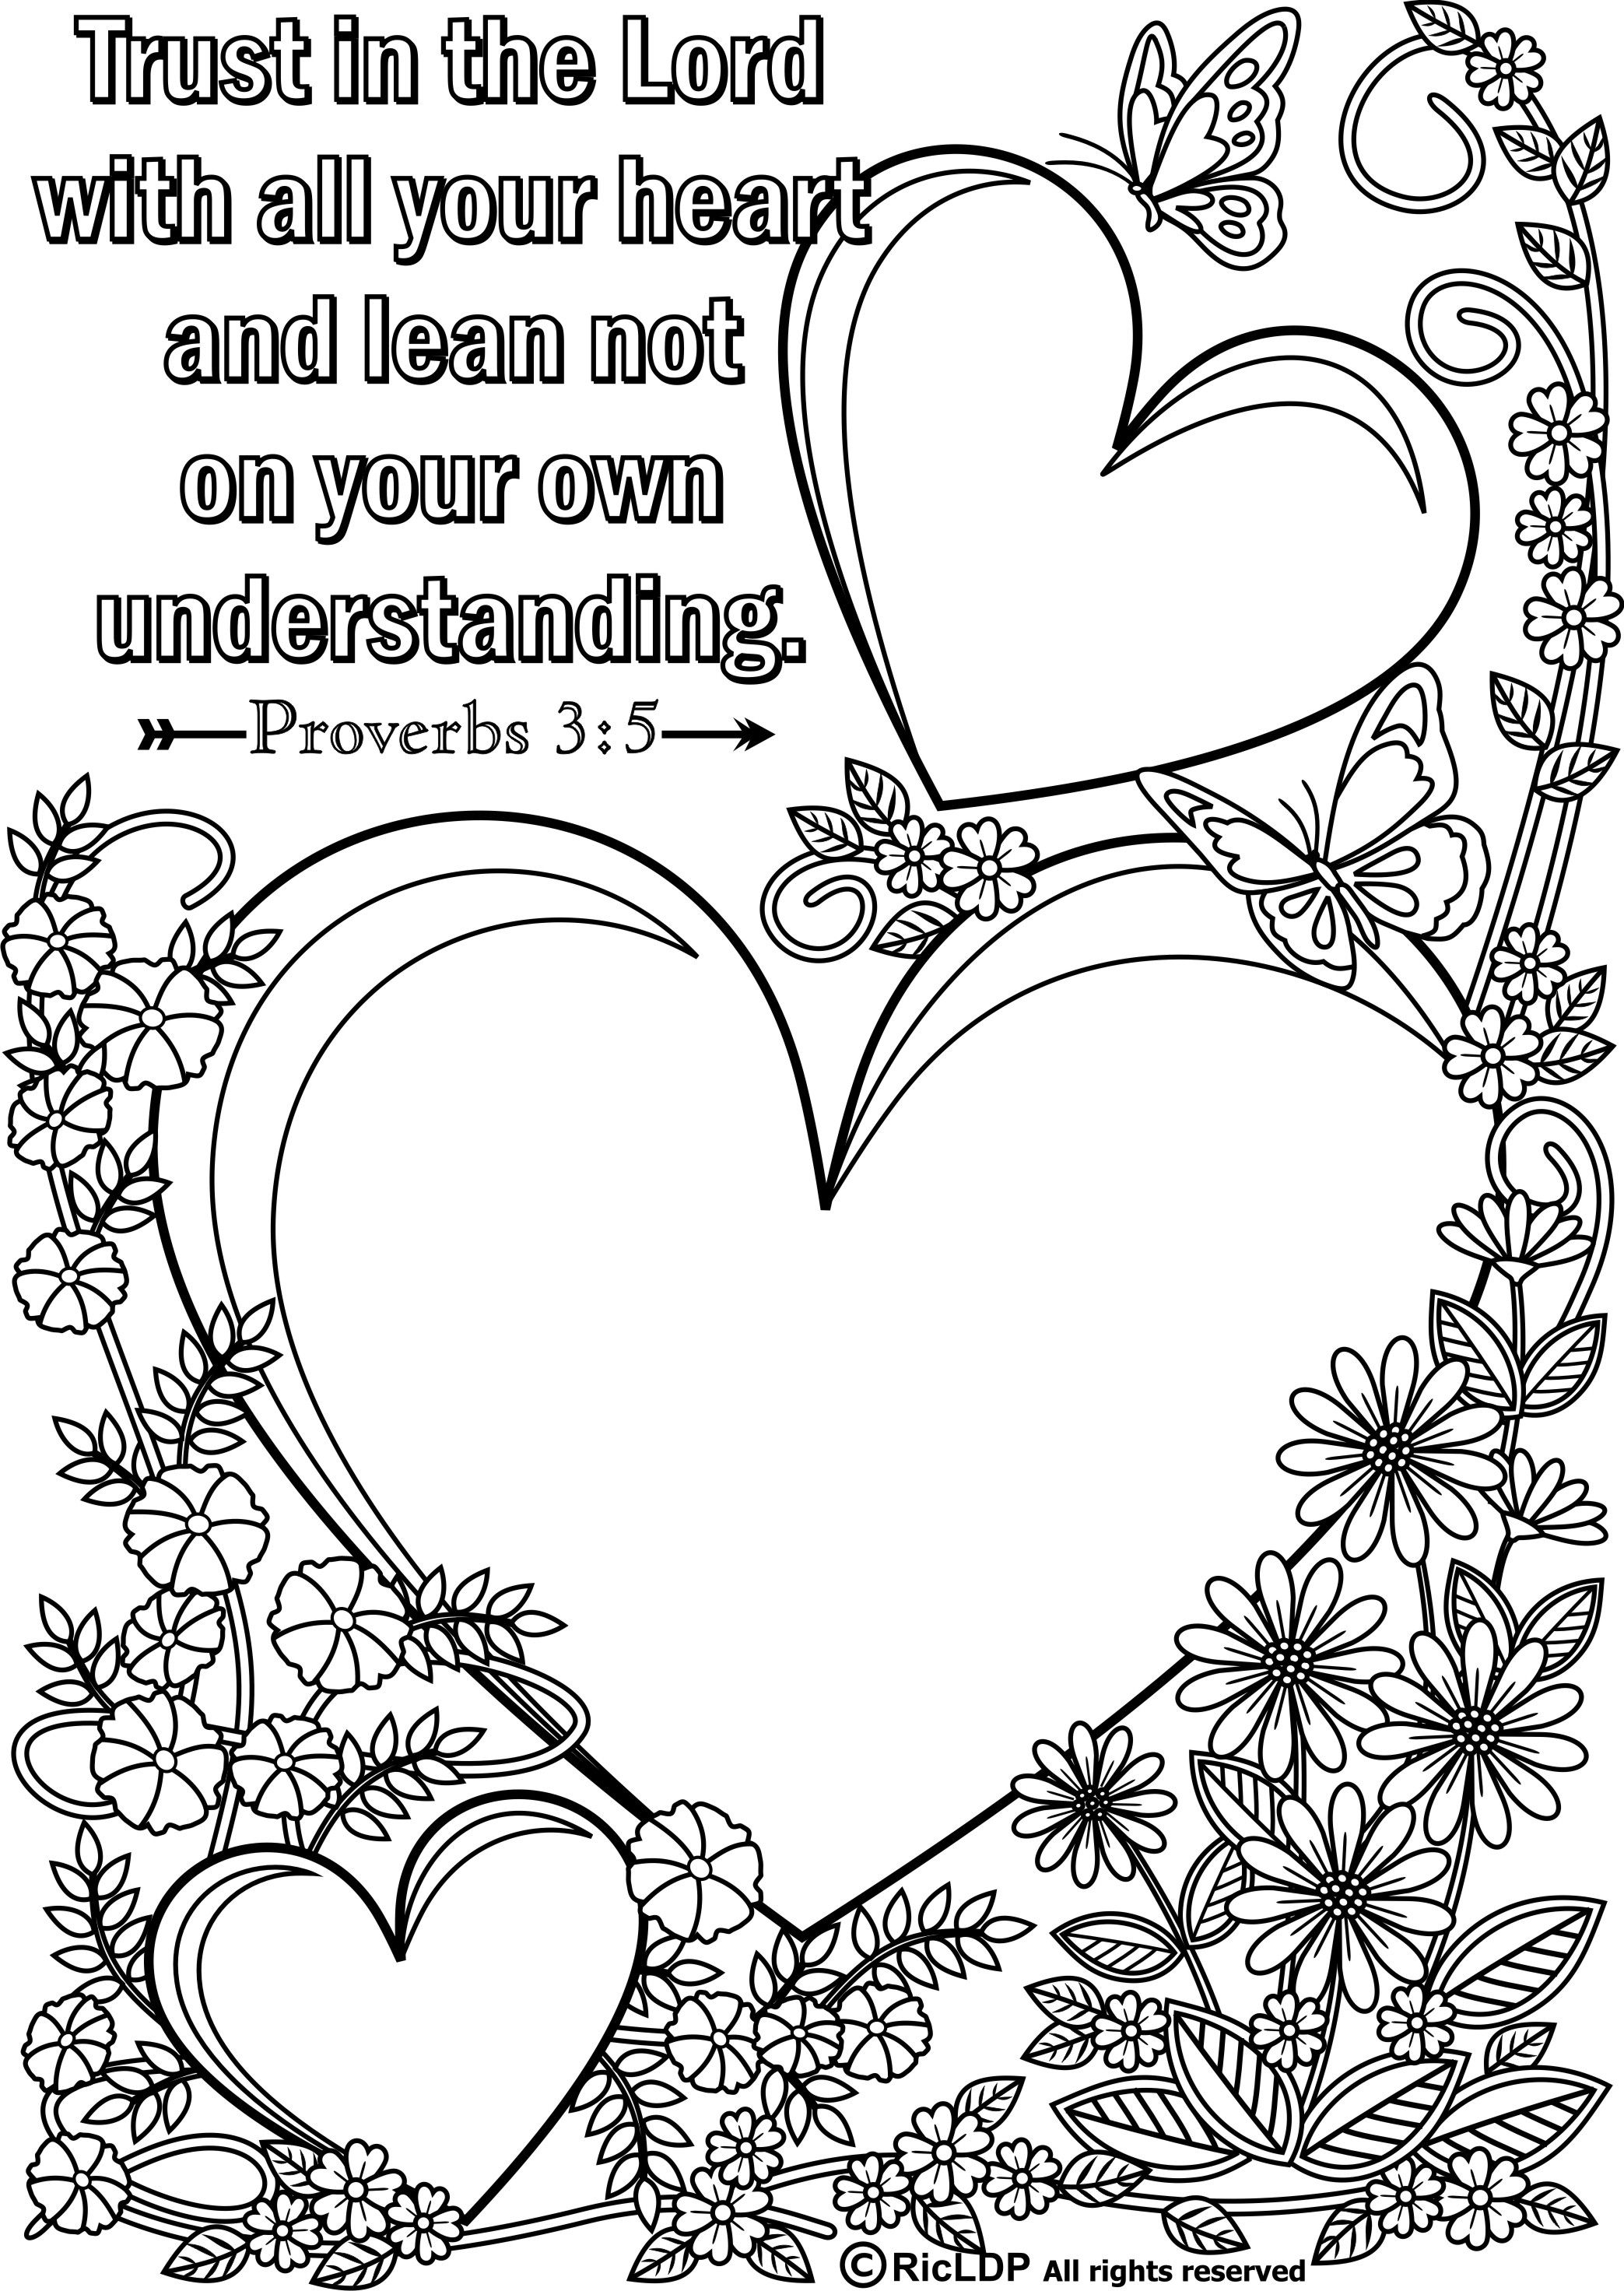 Coloring Pages To Teach Kids To Love God With All Their Heart